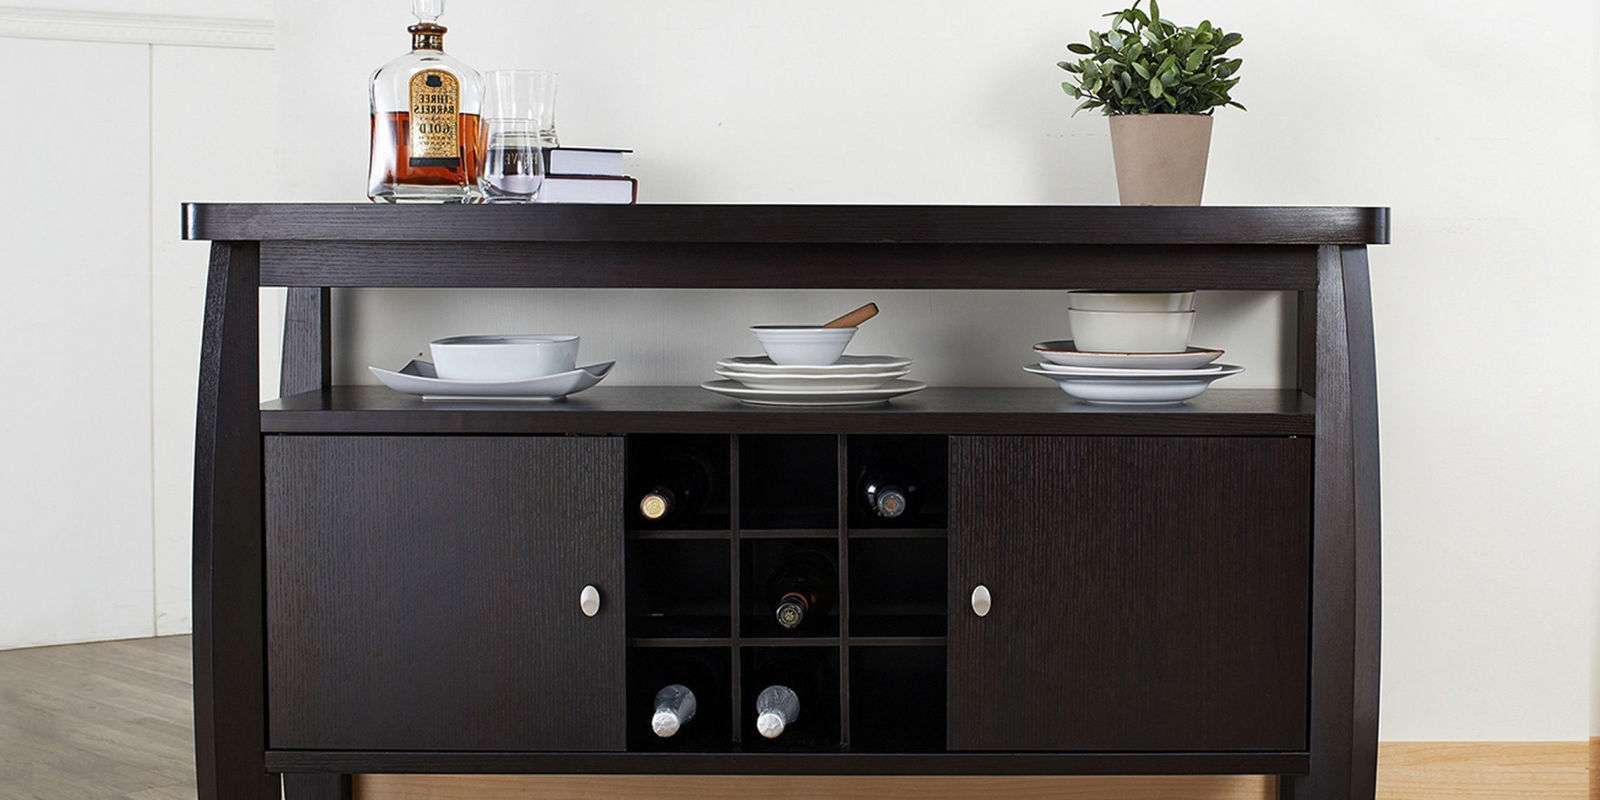 11 Best Sideboards And Buffets In 2018 – Reviews Of Sideboards Throughout Small Dining Room Sideboards (Gallery 7 of 20)